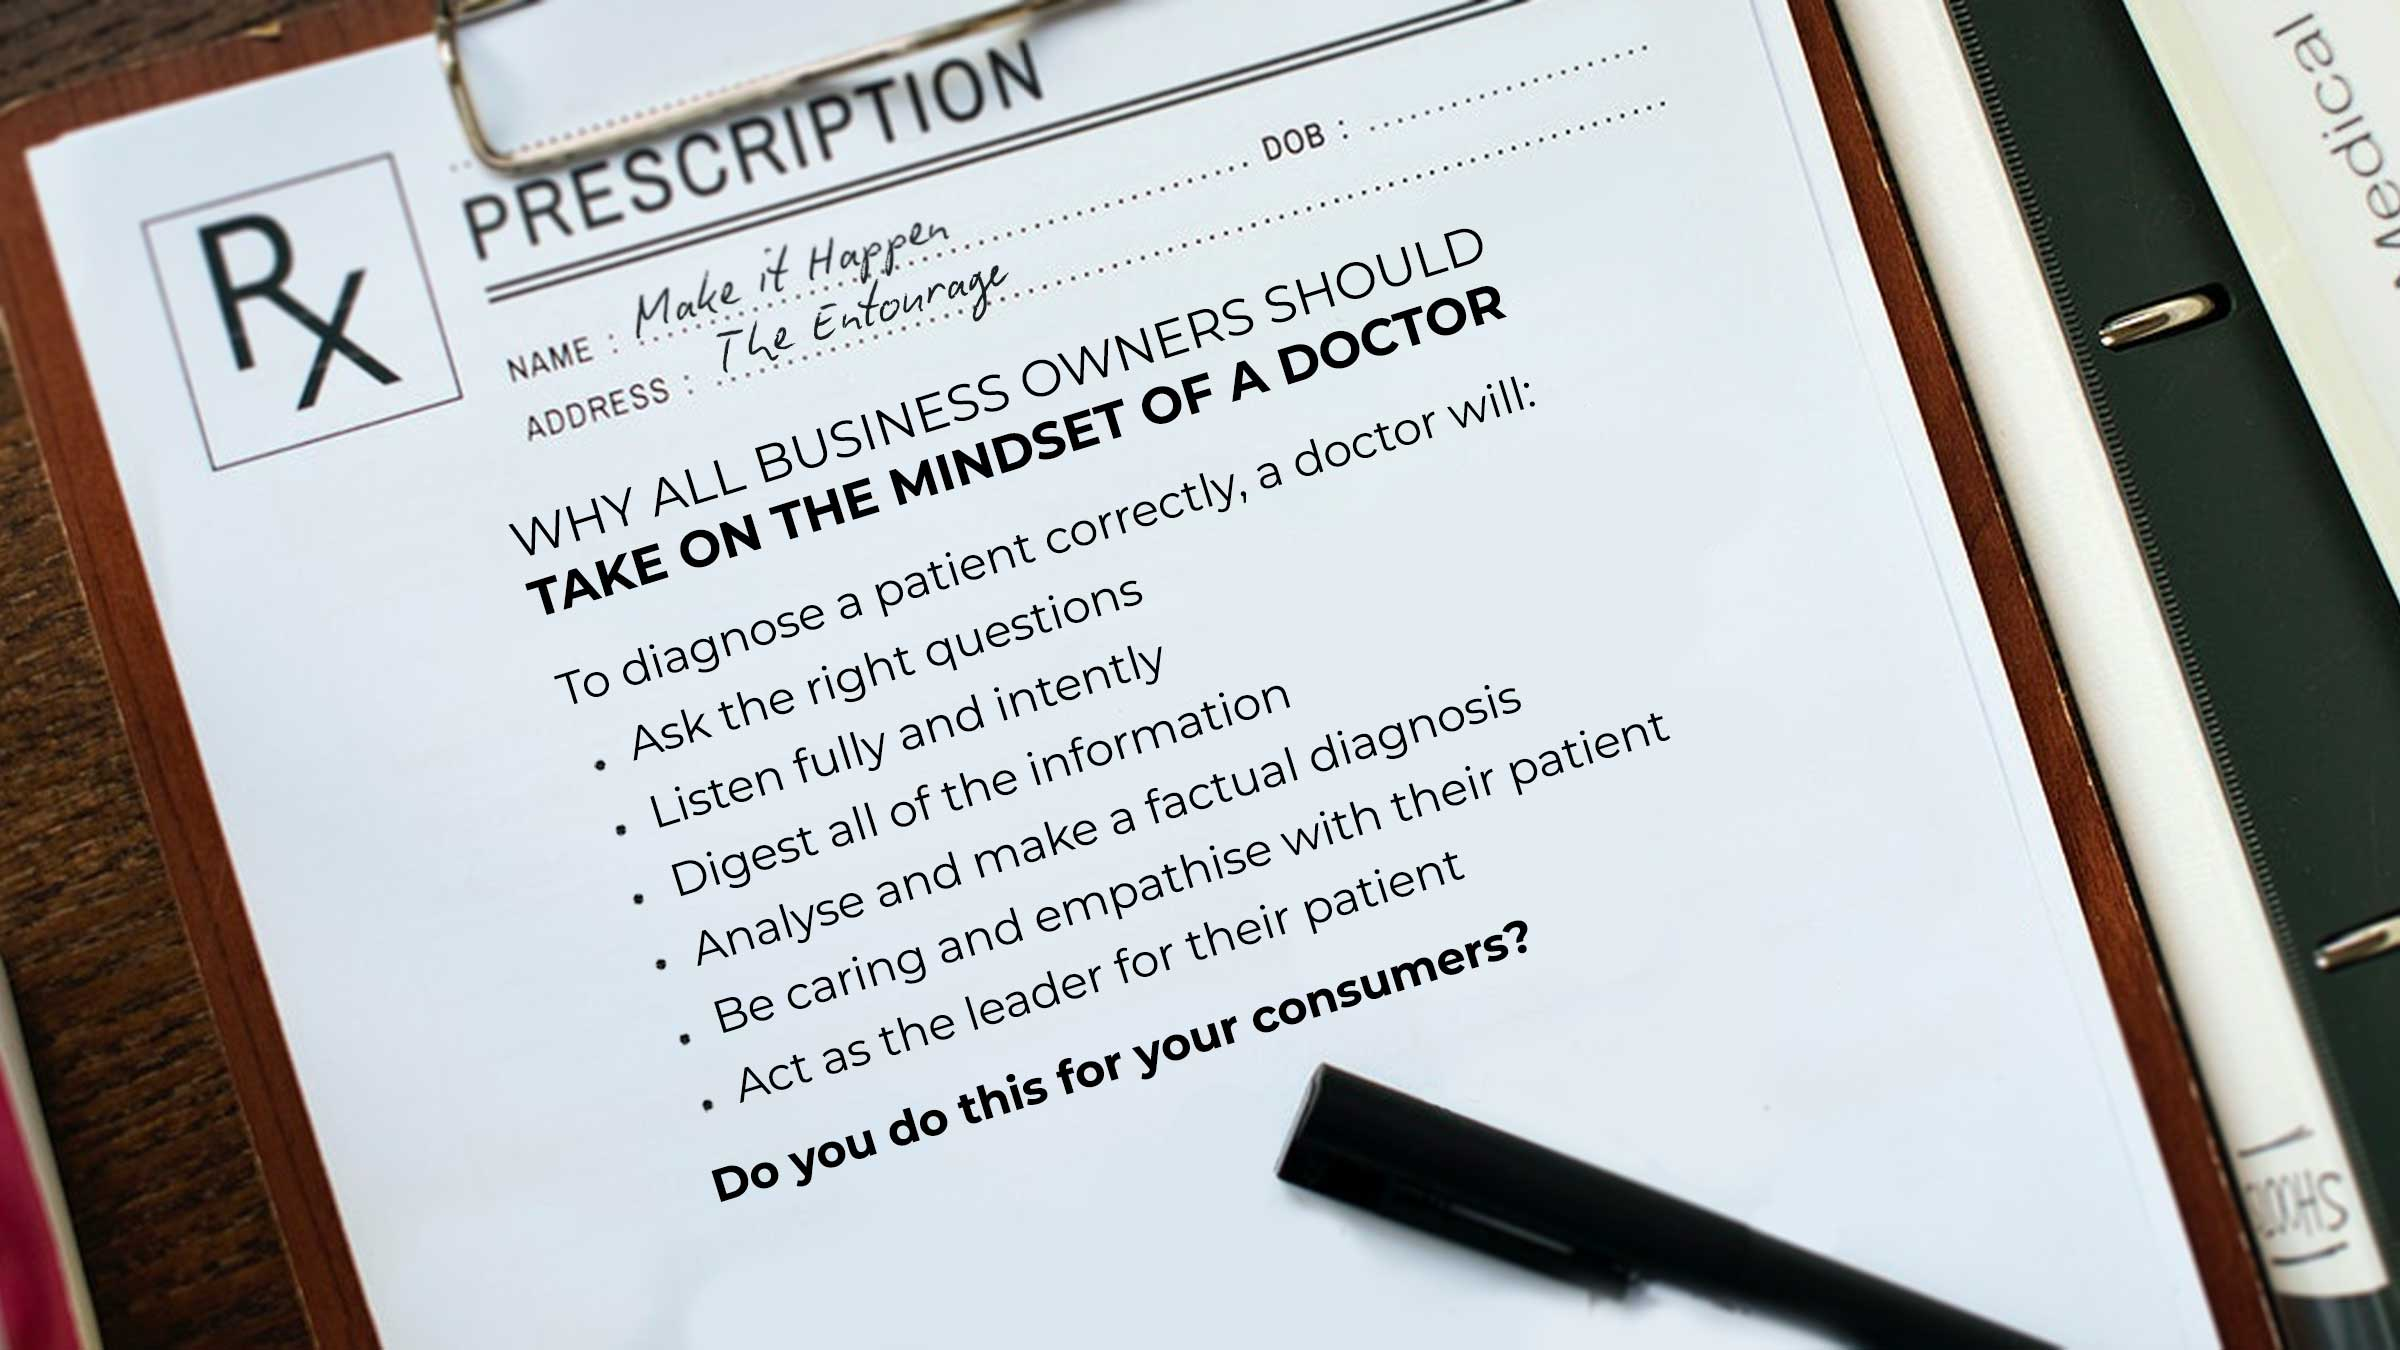 Why-all-business-owners-should-take-on-the-mindset-of-a-doctor